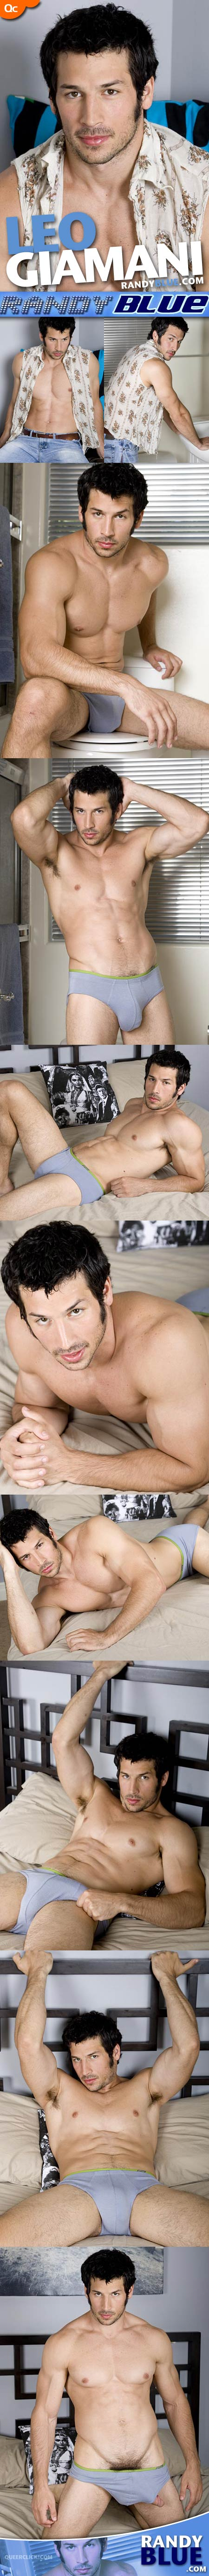 Leo Giamani at RandyBlue.com